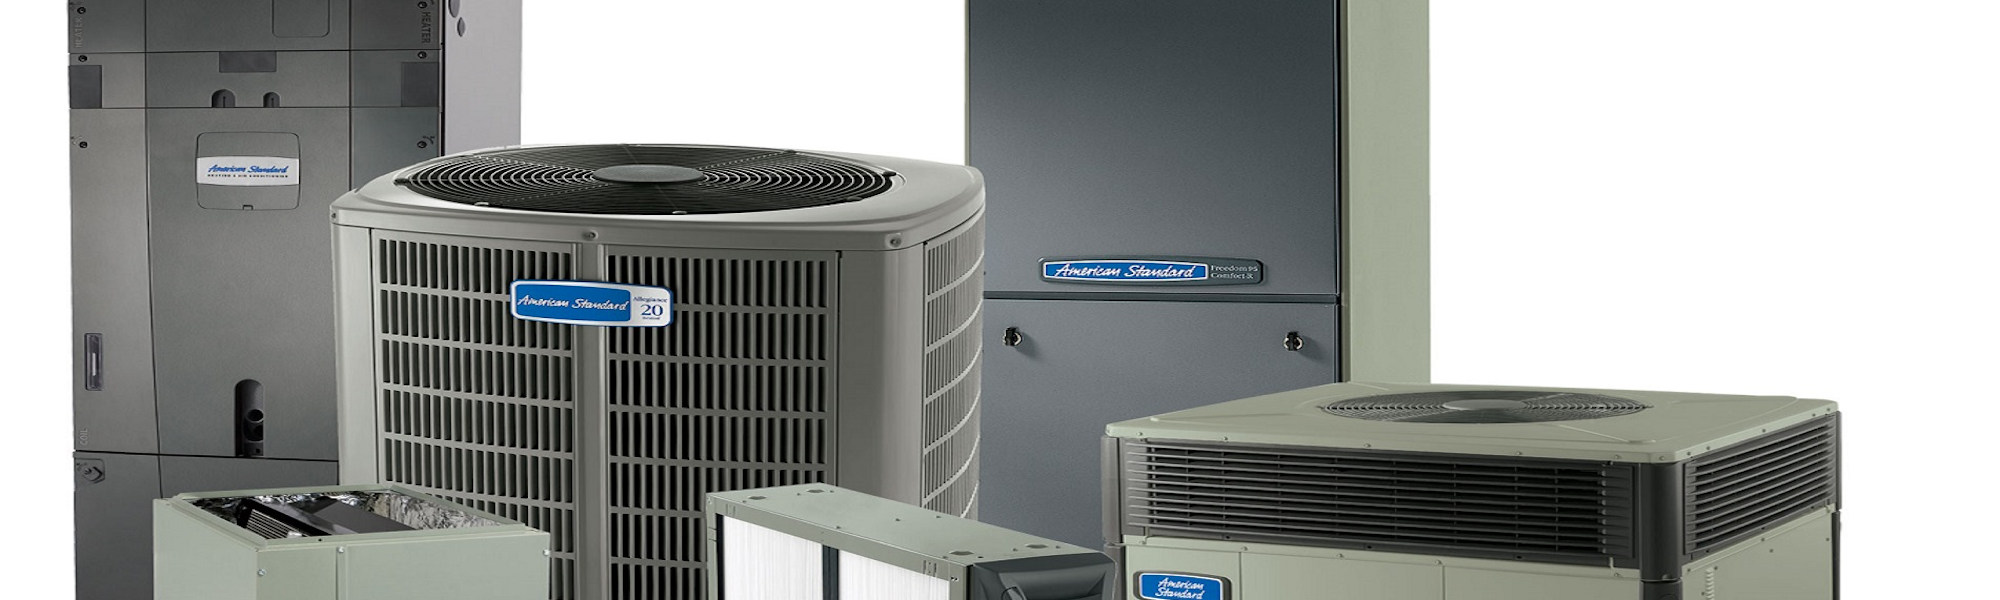 Affordable Heating and Cooling Repair Service Heating & Furnace Installation